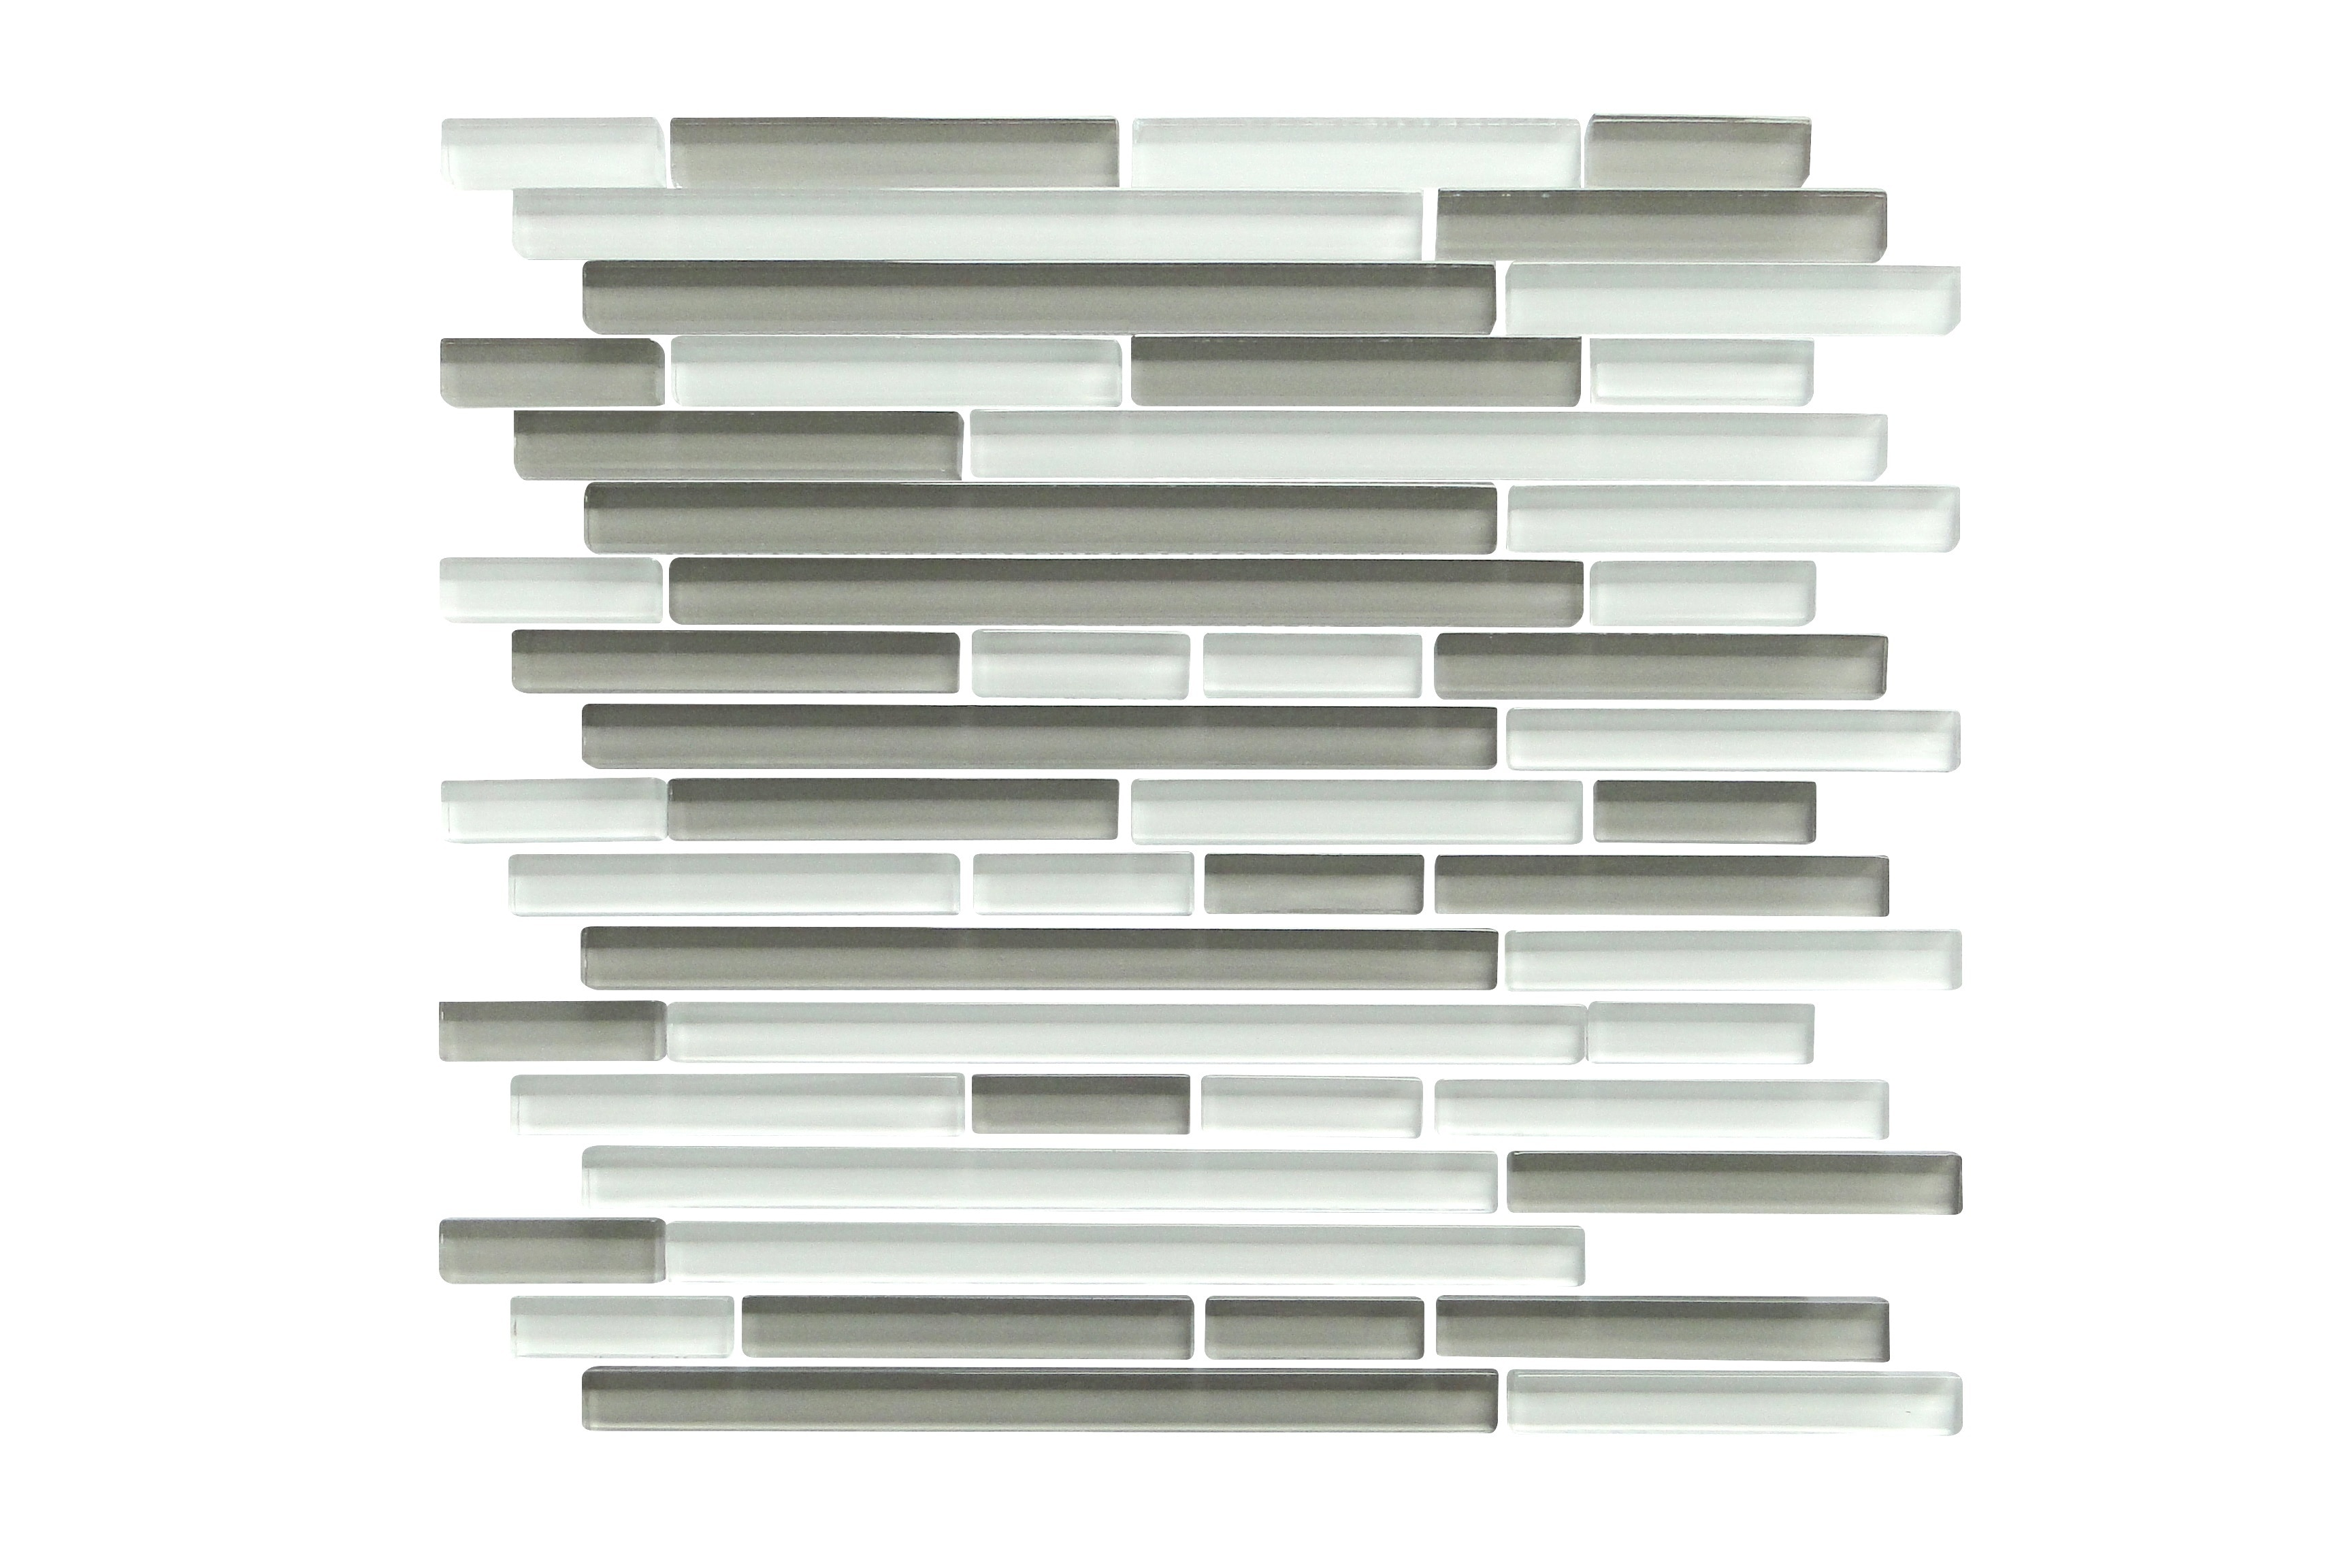 Glass Mosaic / 14 x 12 x 0.31 inches / Glossy Interlocking Random Sized Glass Mosaic Tile In Gray And White 0